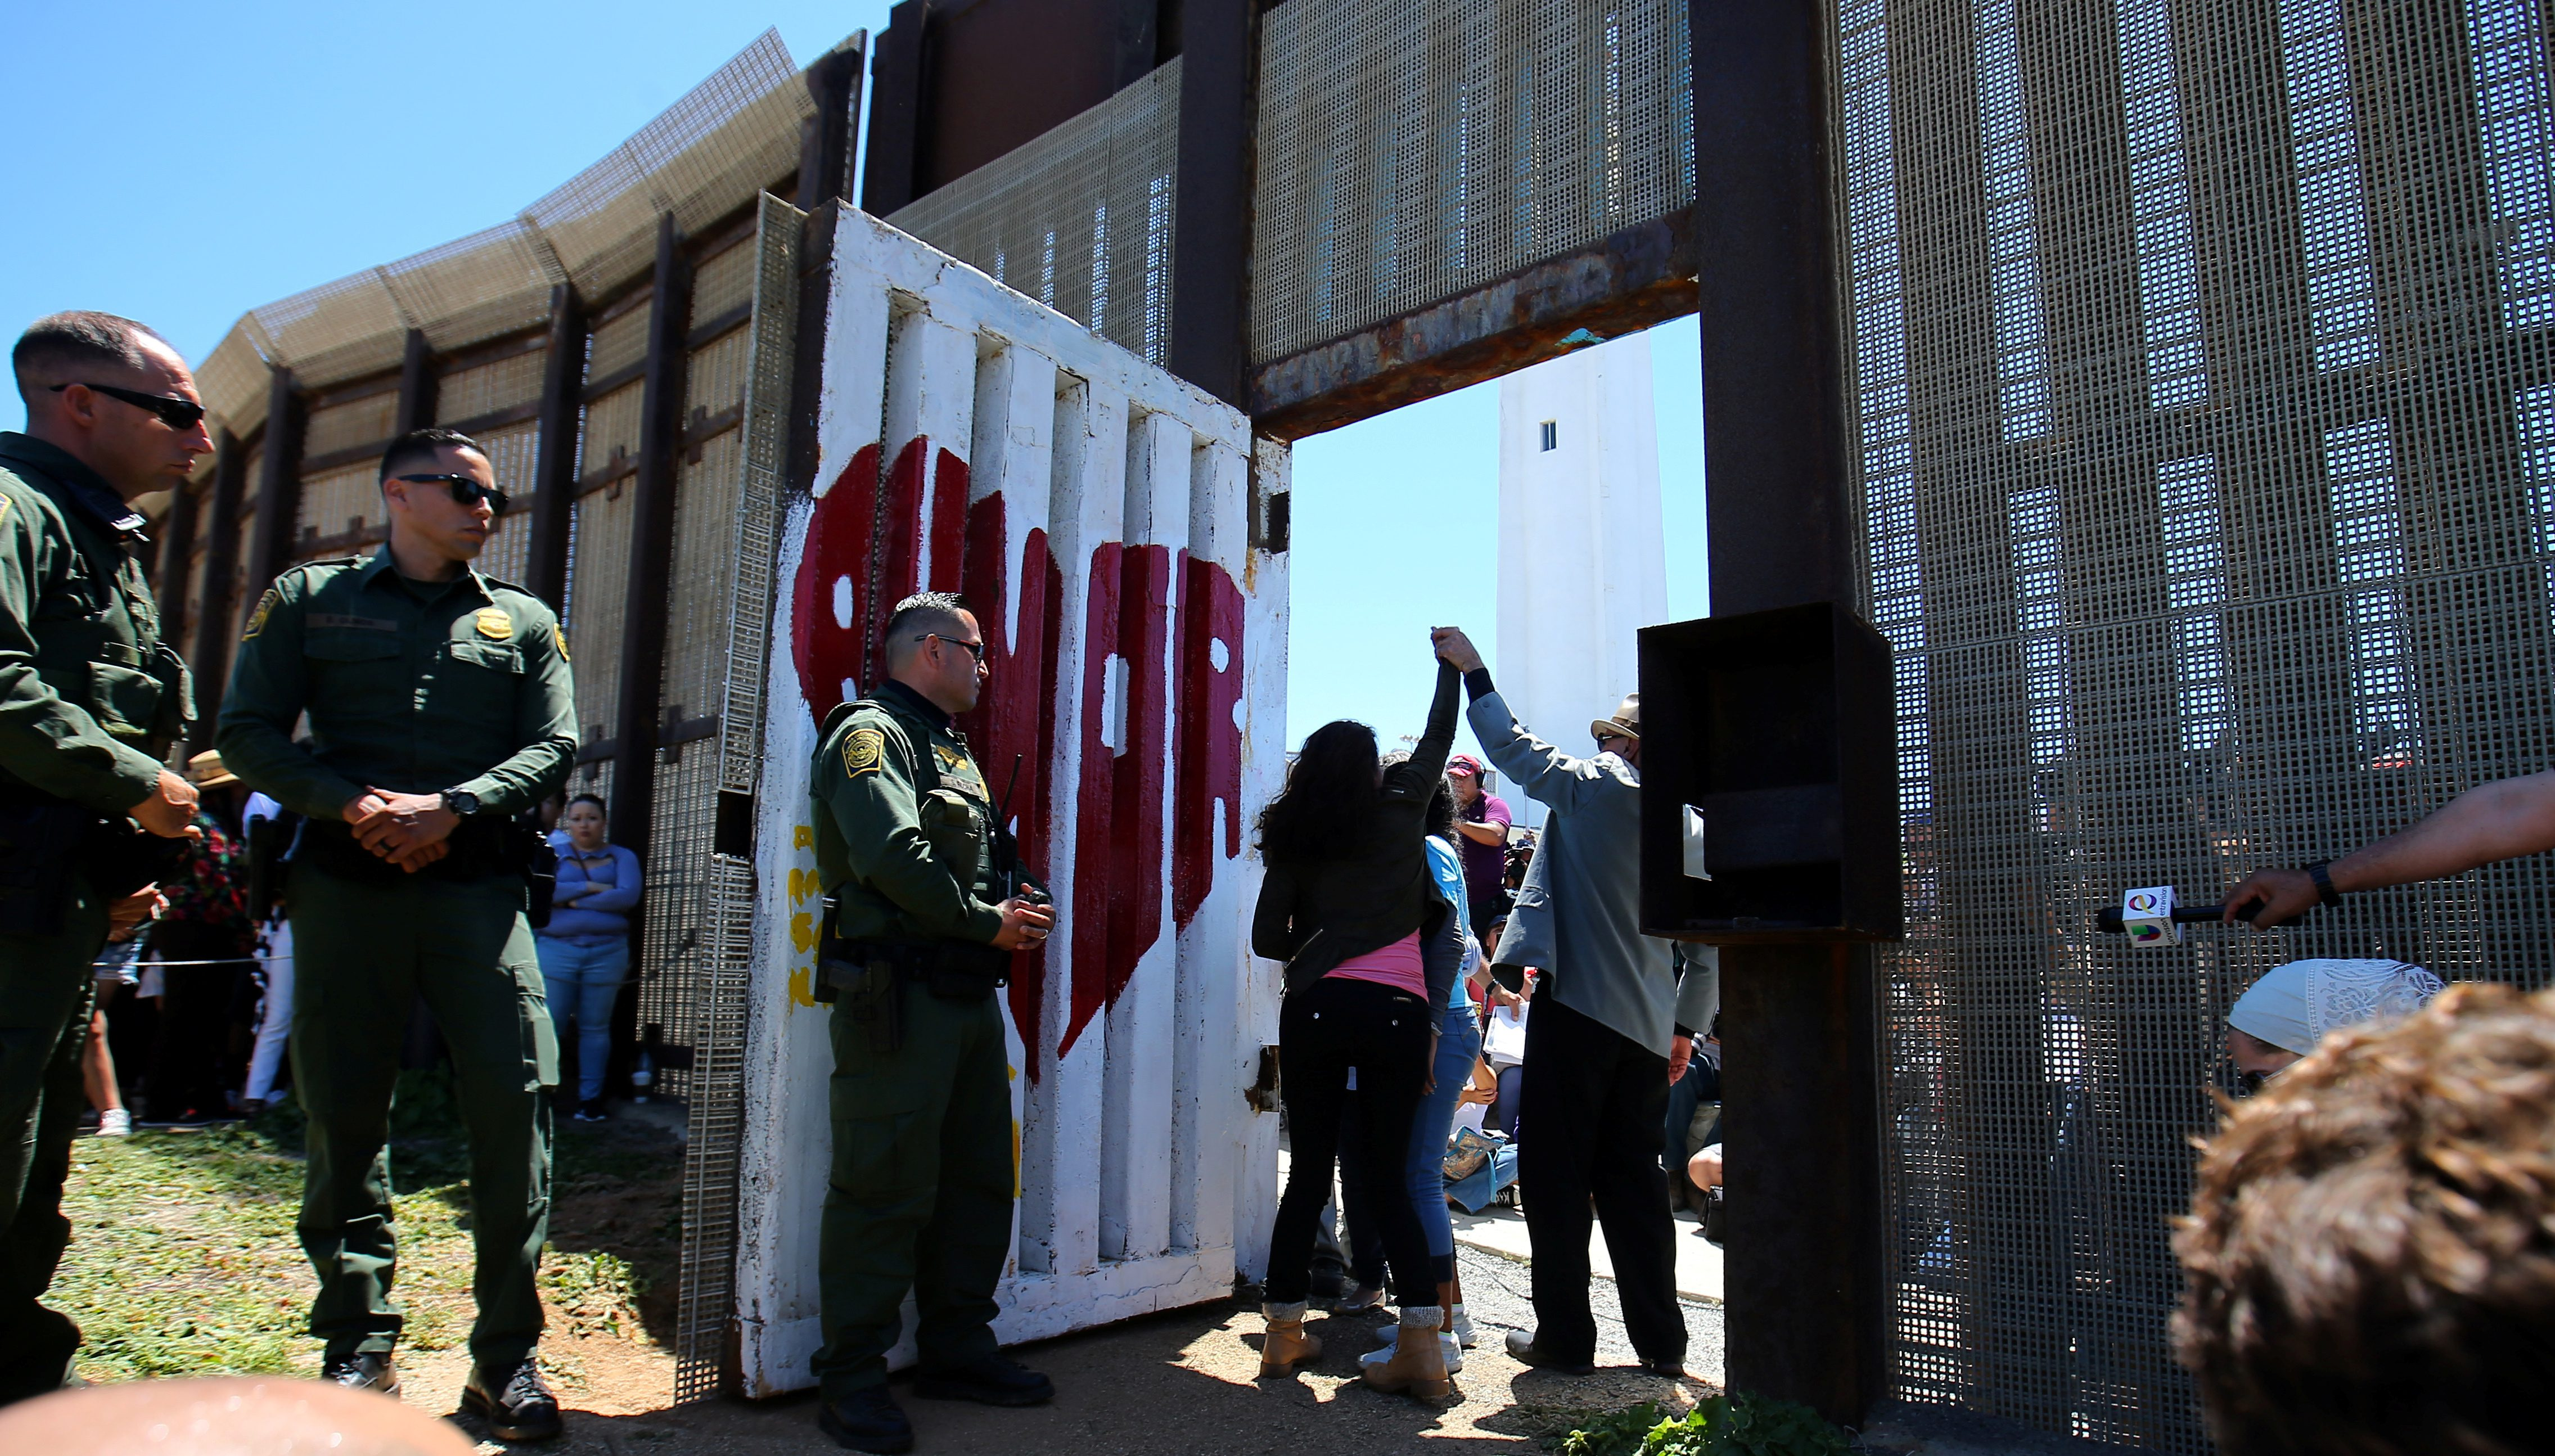 A family celebrates as U.S. Border patrol agents open a single gate to allow selected families to hug along the Mexico border